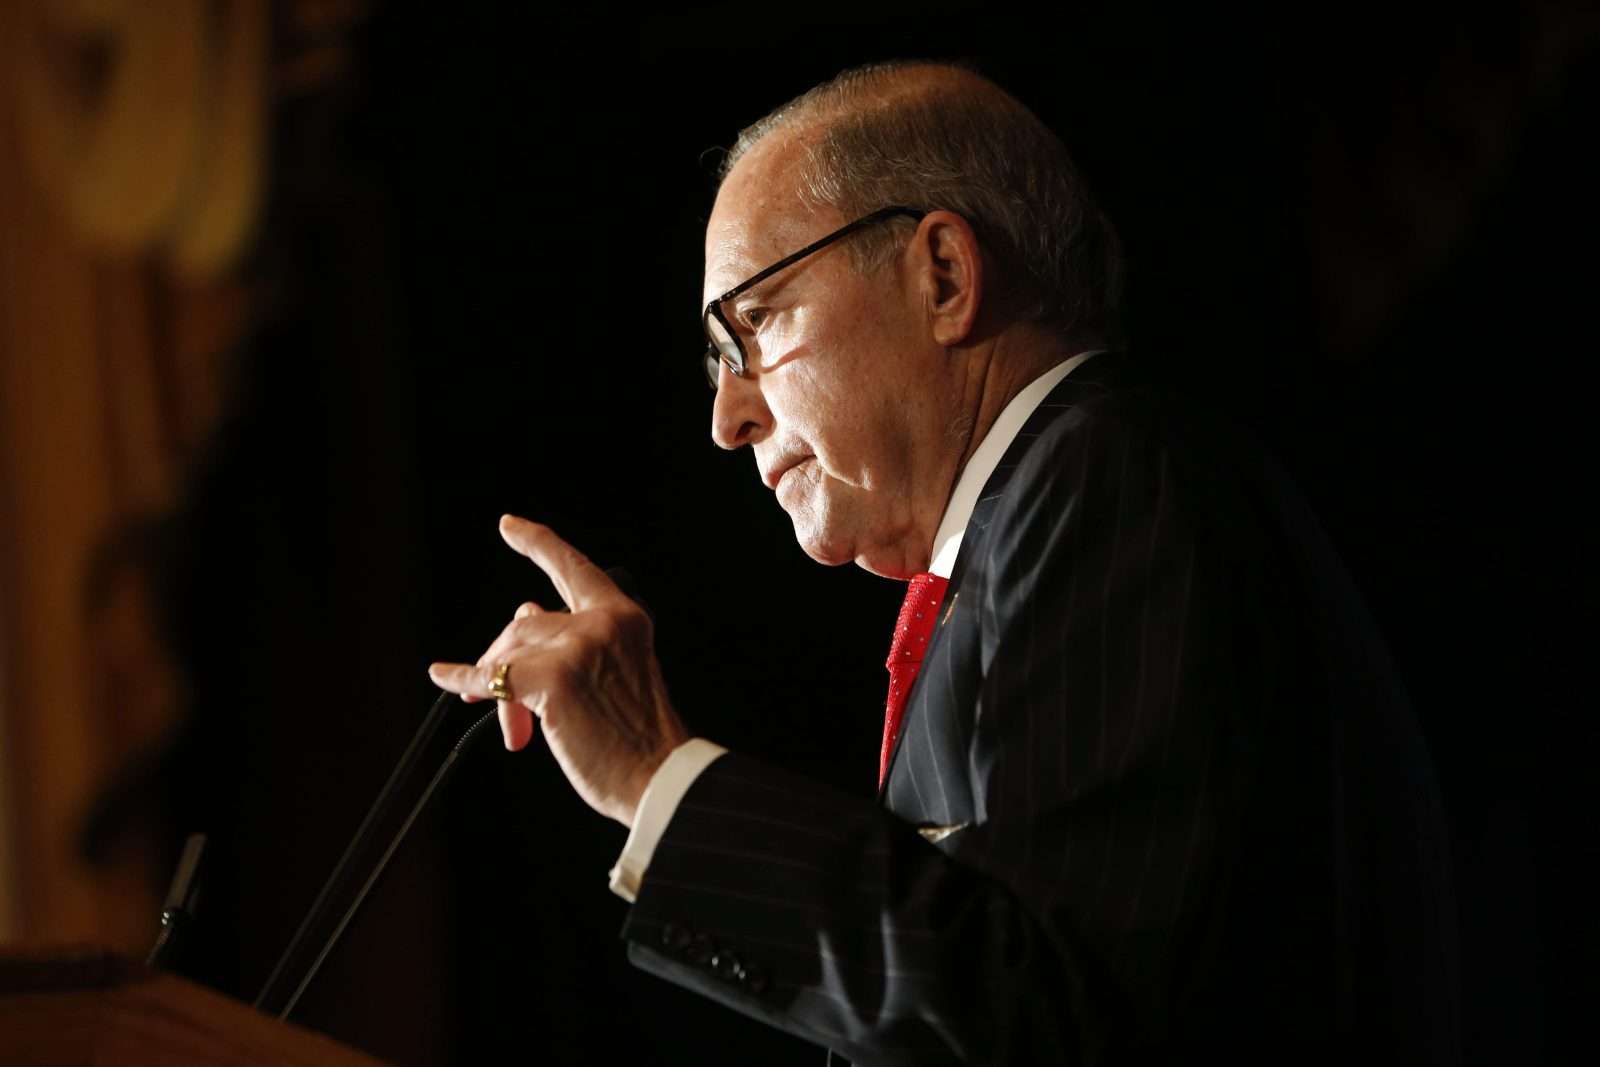 Conservative commentator Larry Kudlow speaks during the New York Delegation Breakfast at the Renaissance Hotel in Cleveland, Ohio, Monday, July 18, 2016.  (Photo by Derek Gee)